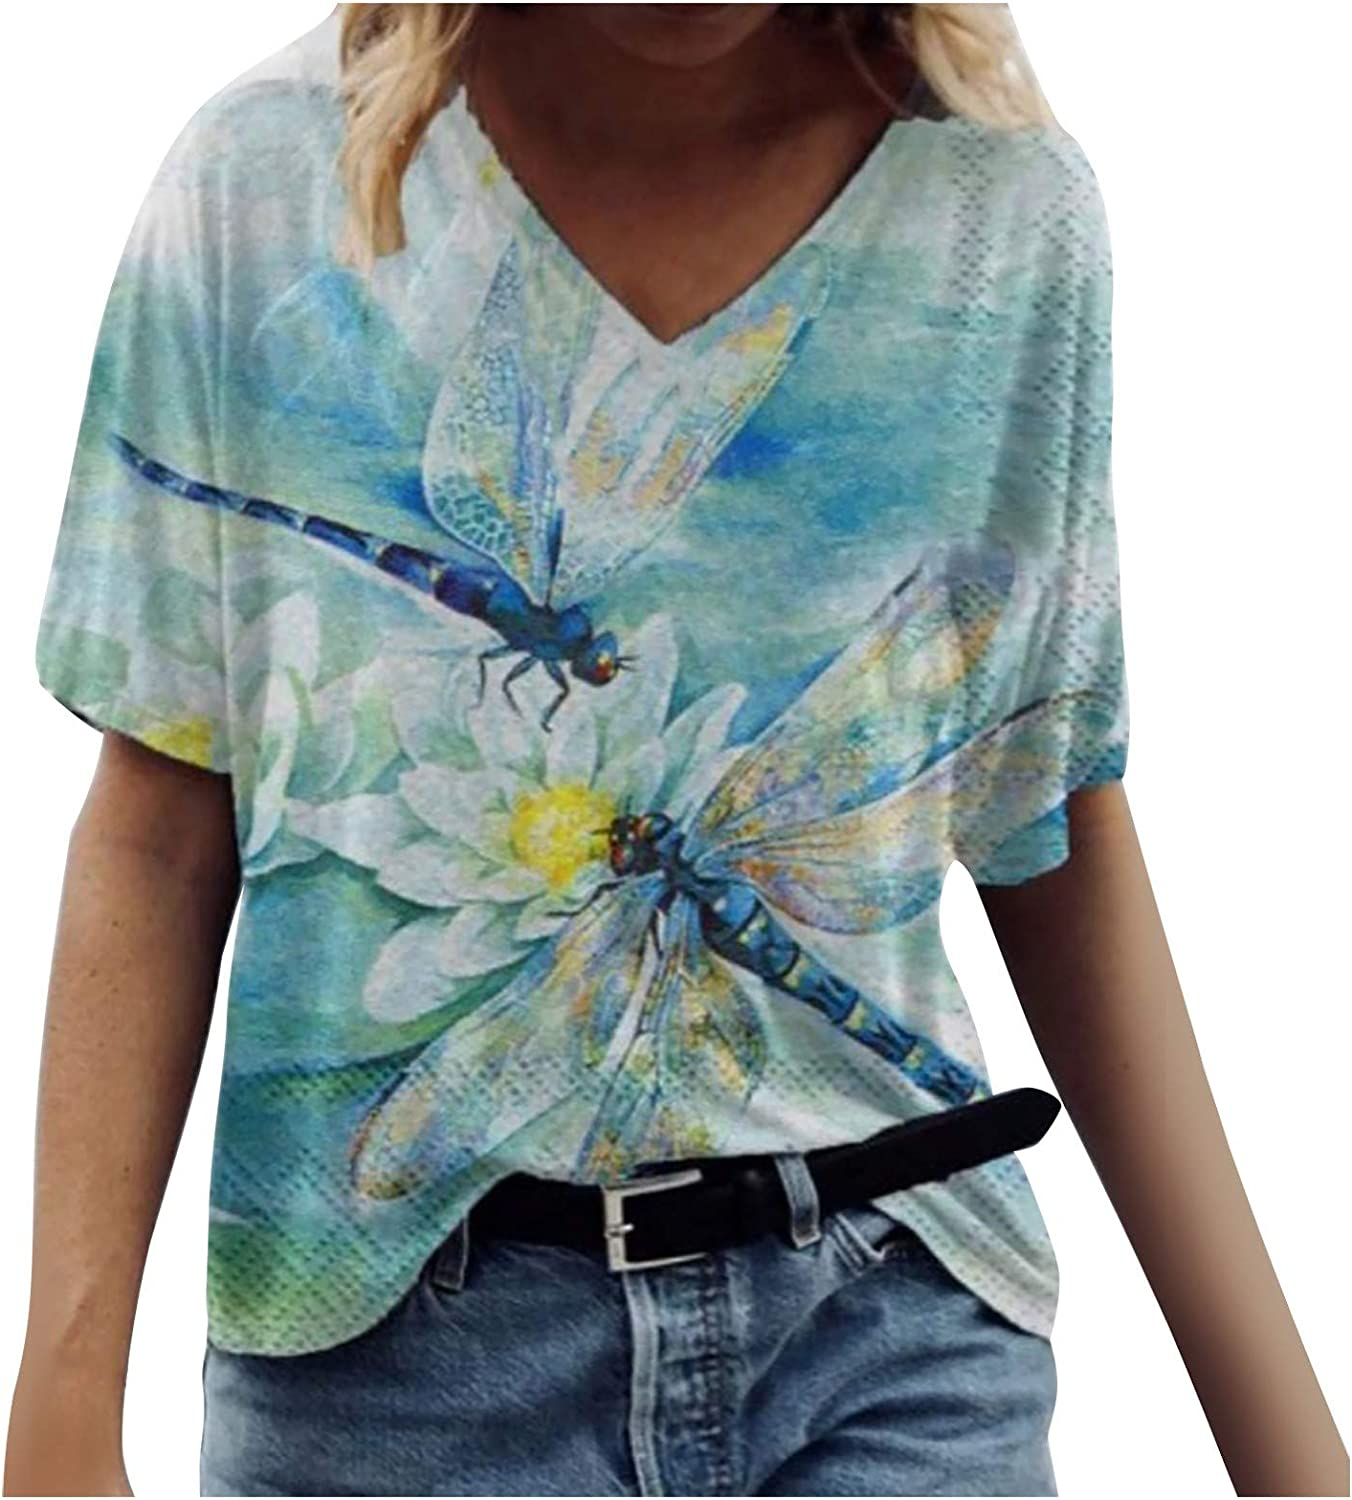 Women Max 44% OFF Blouses and free Tops Fashion Plus Print Work for Size